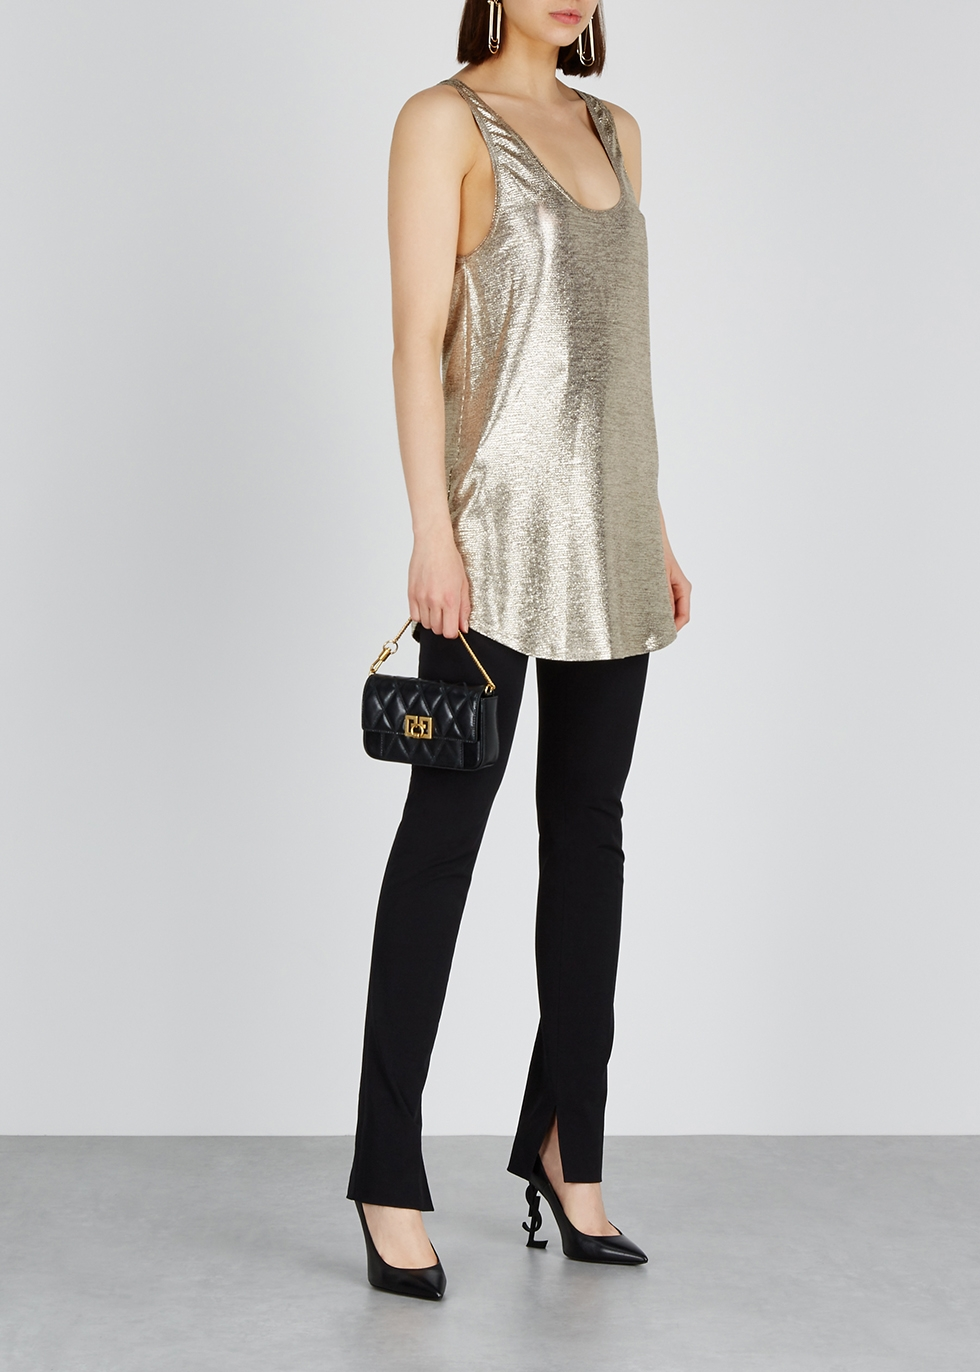 Silver coated-knit top - Balmain